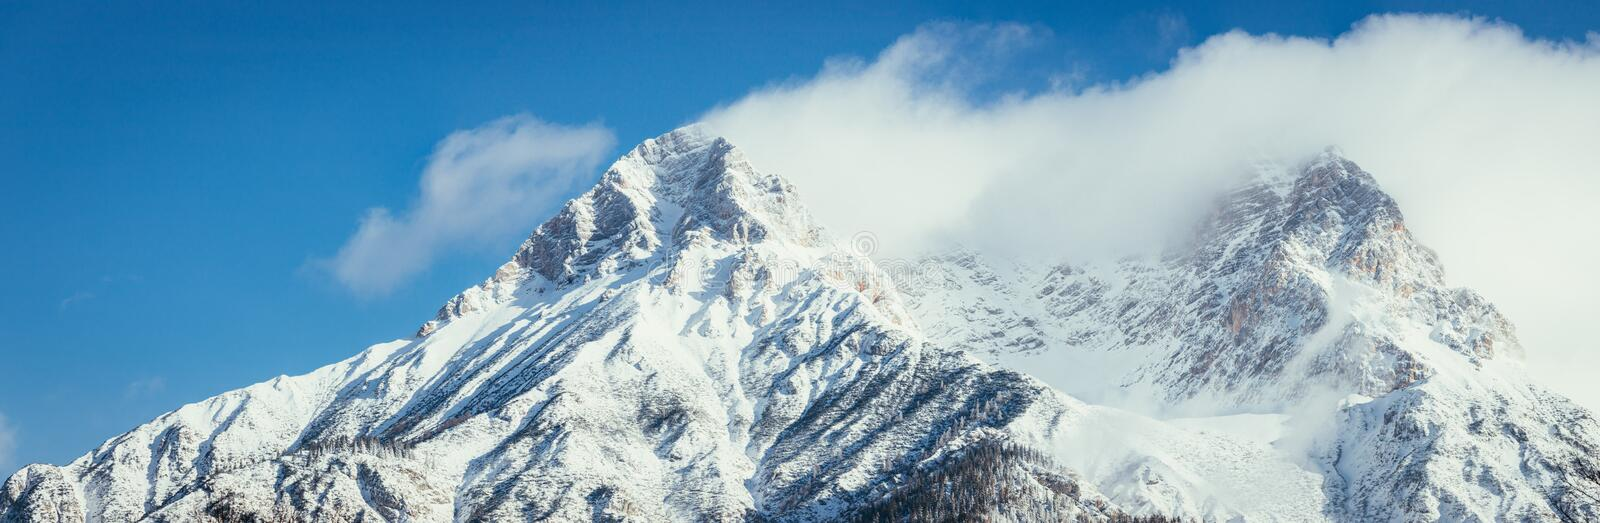 Epic snowy mountain peak with clouds in winter, landscape, alps, austria. Lpeak cliffy adventure rock misty clear solid stone cliffhanger beautiful scenery stock images